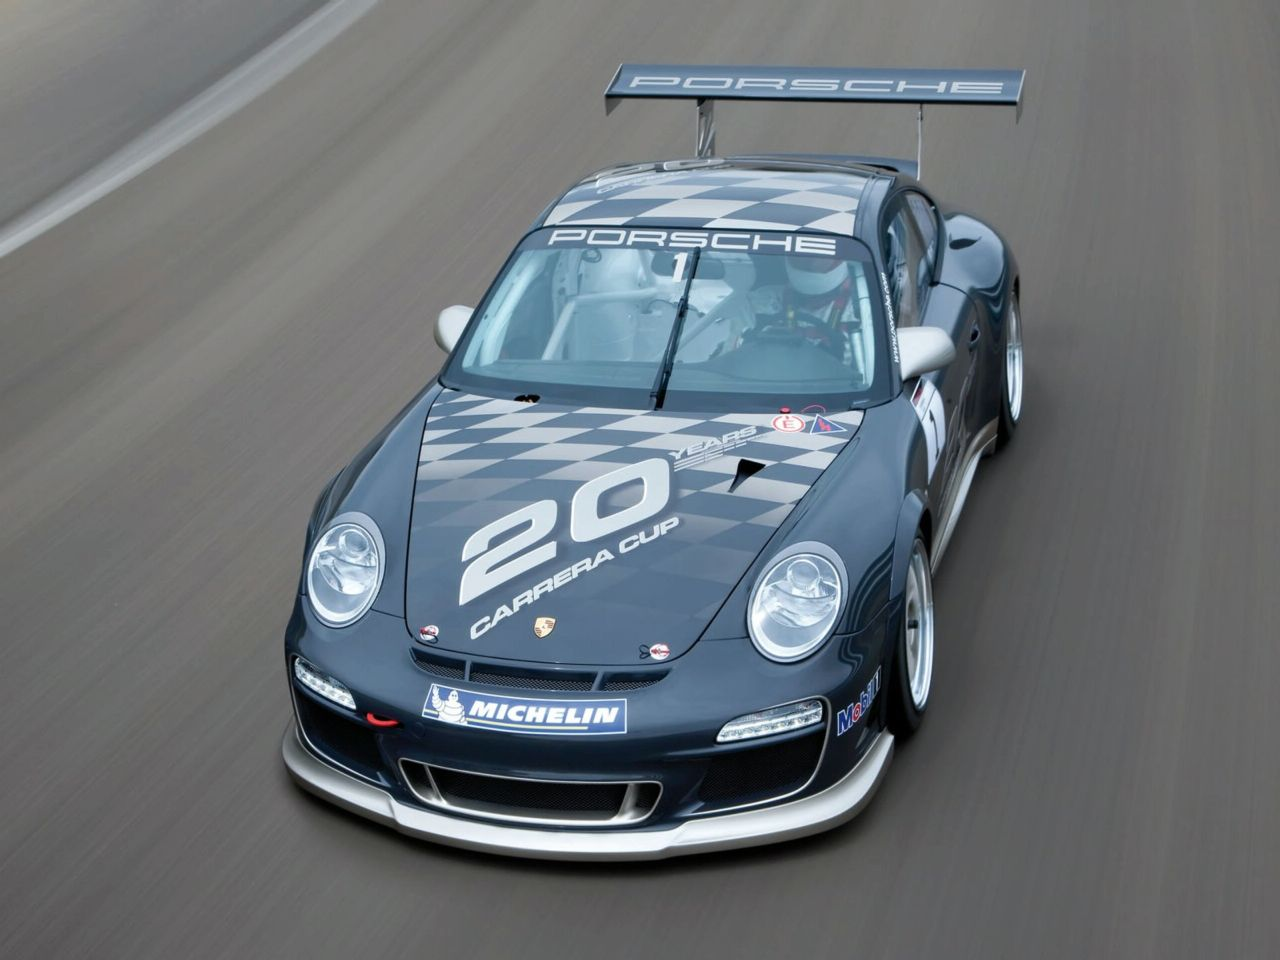 04-gt3-cup